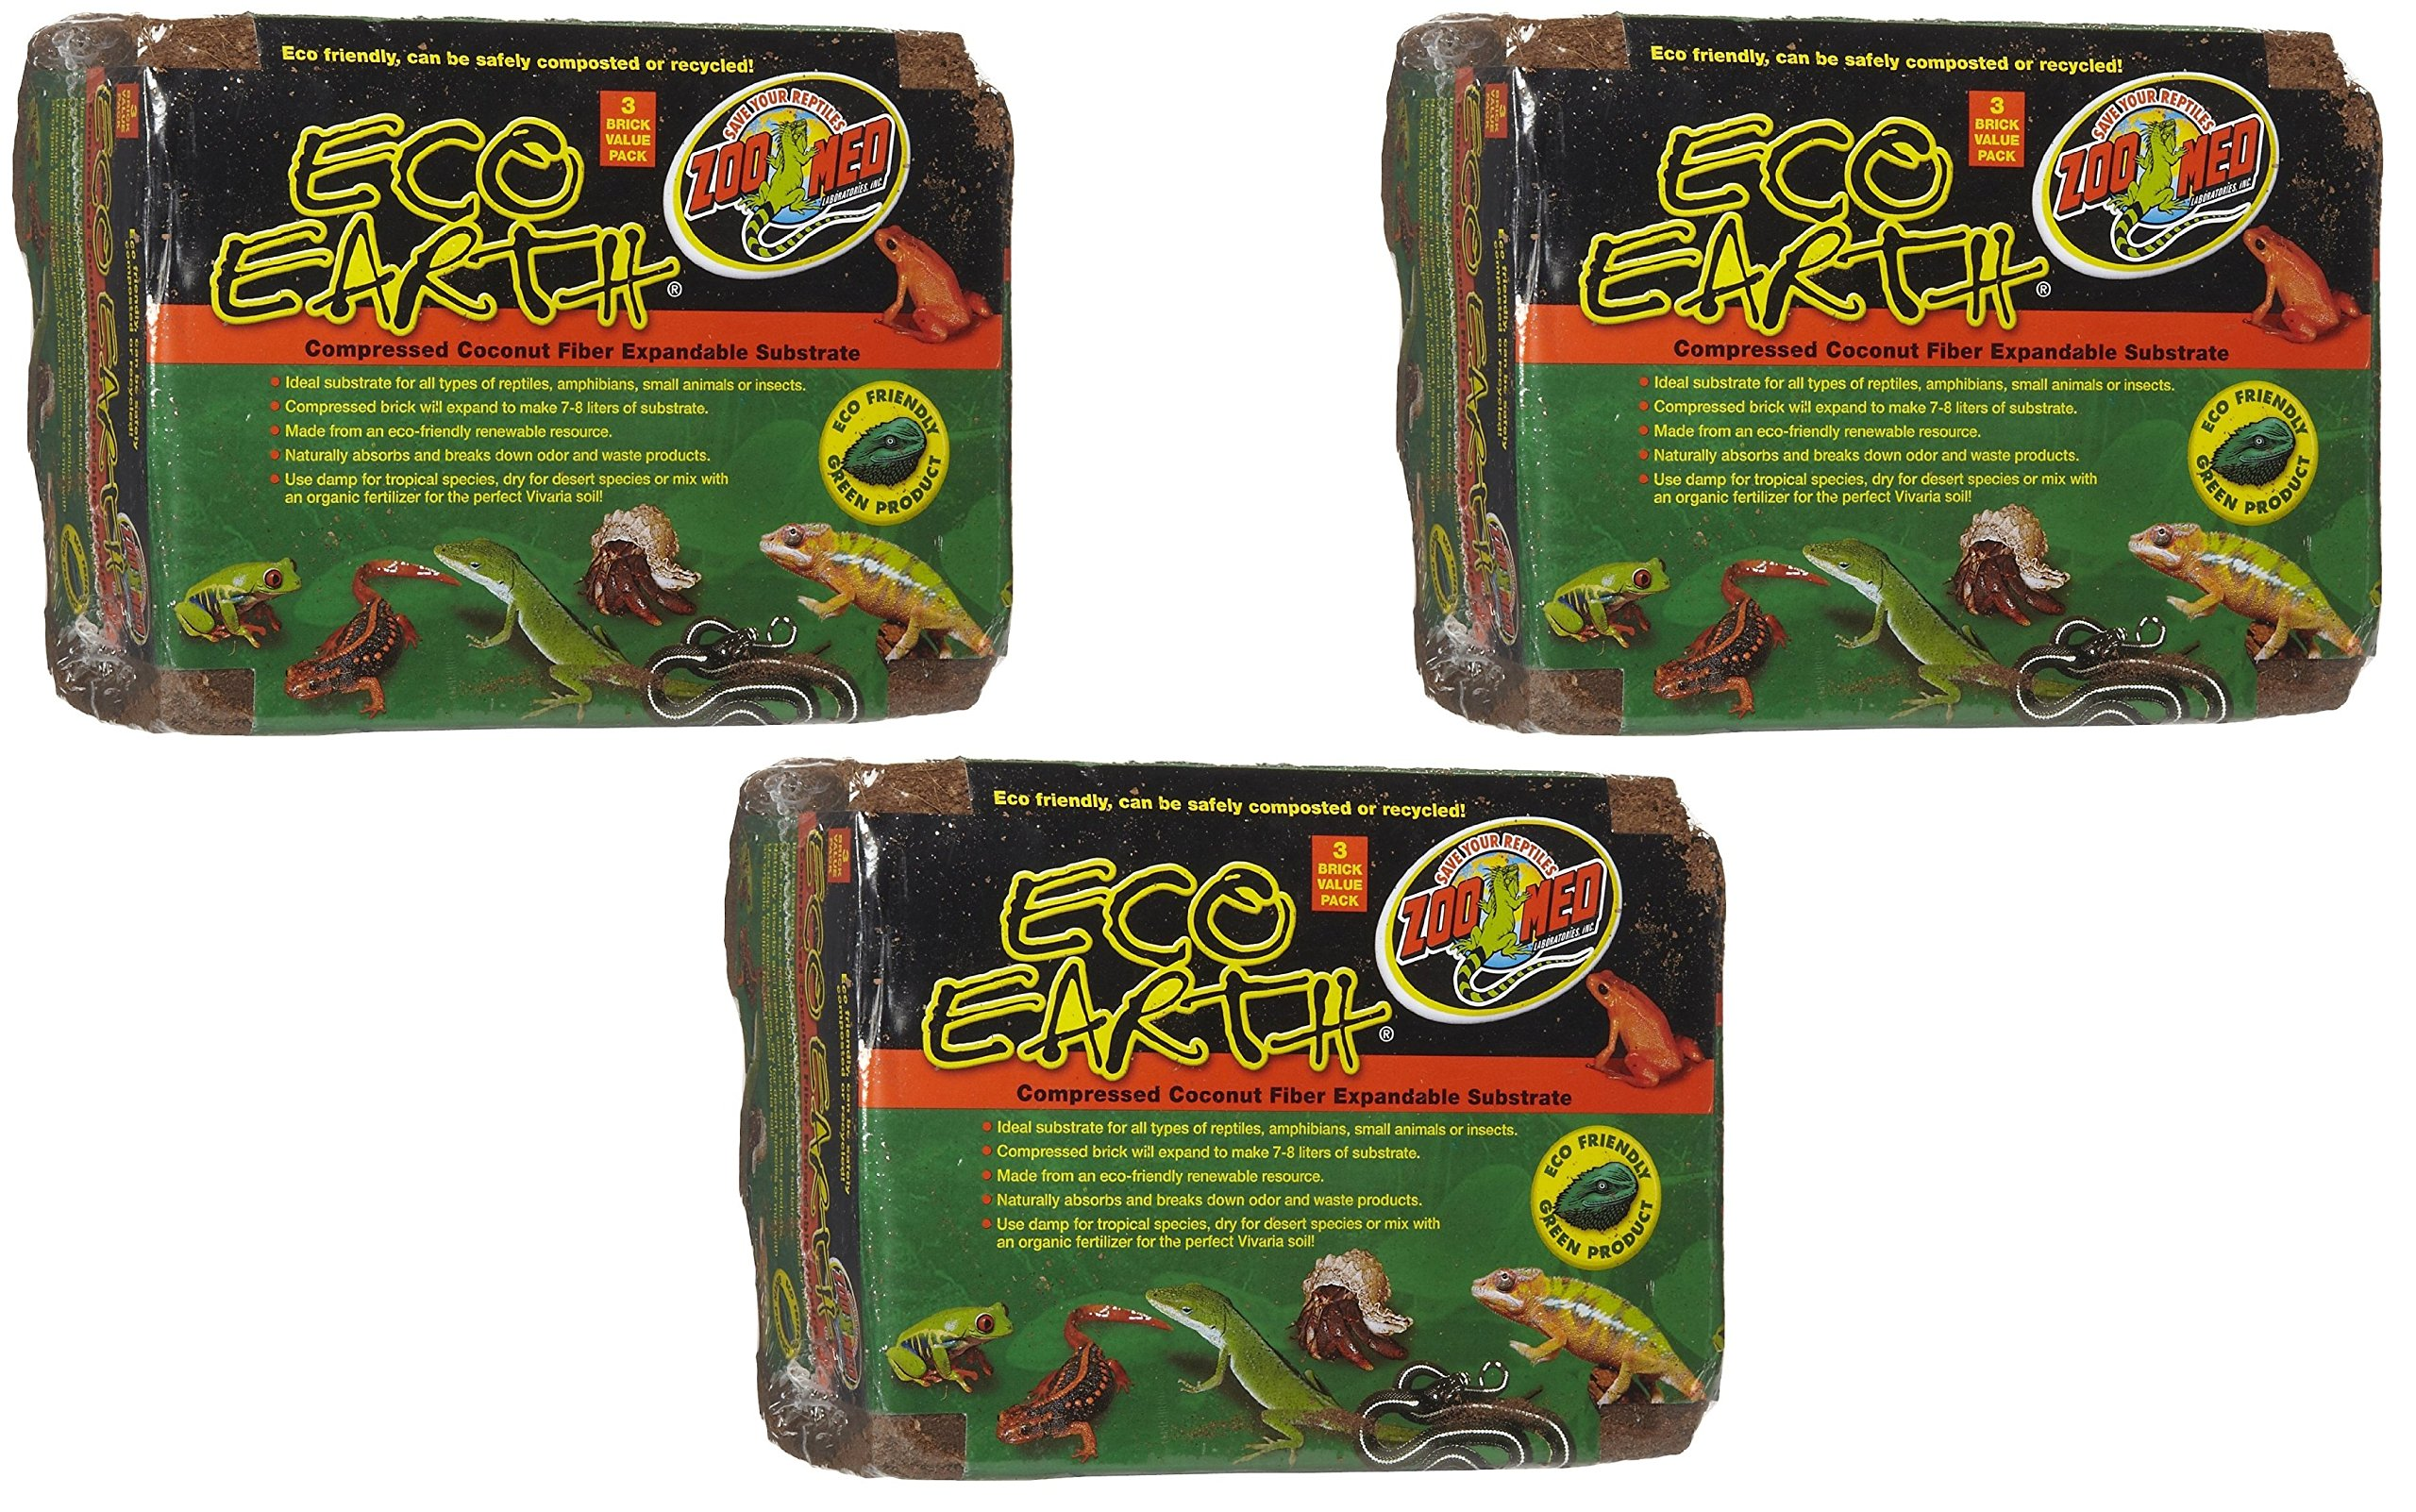 Zoo Med Eco Earth Compressed Coconut Fiber Substrate, 9 Bricks by Zoo Med